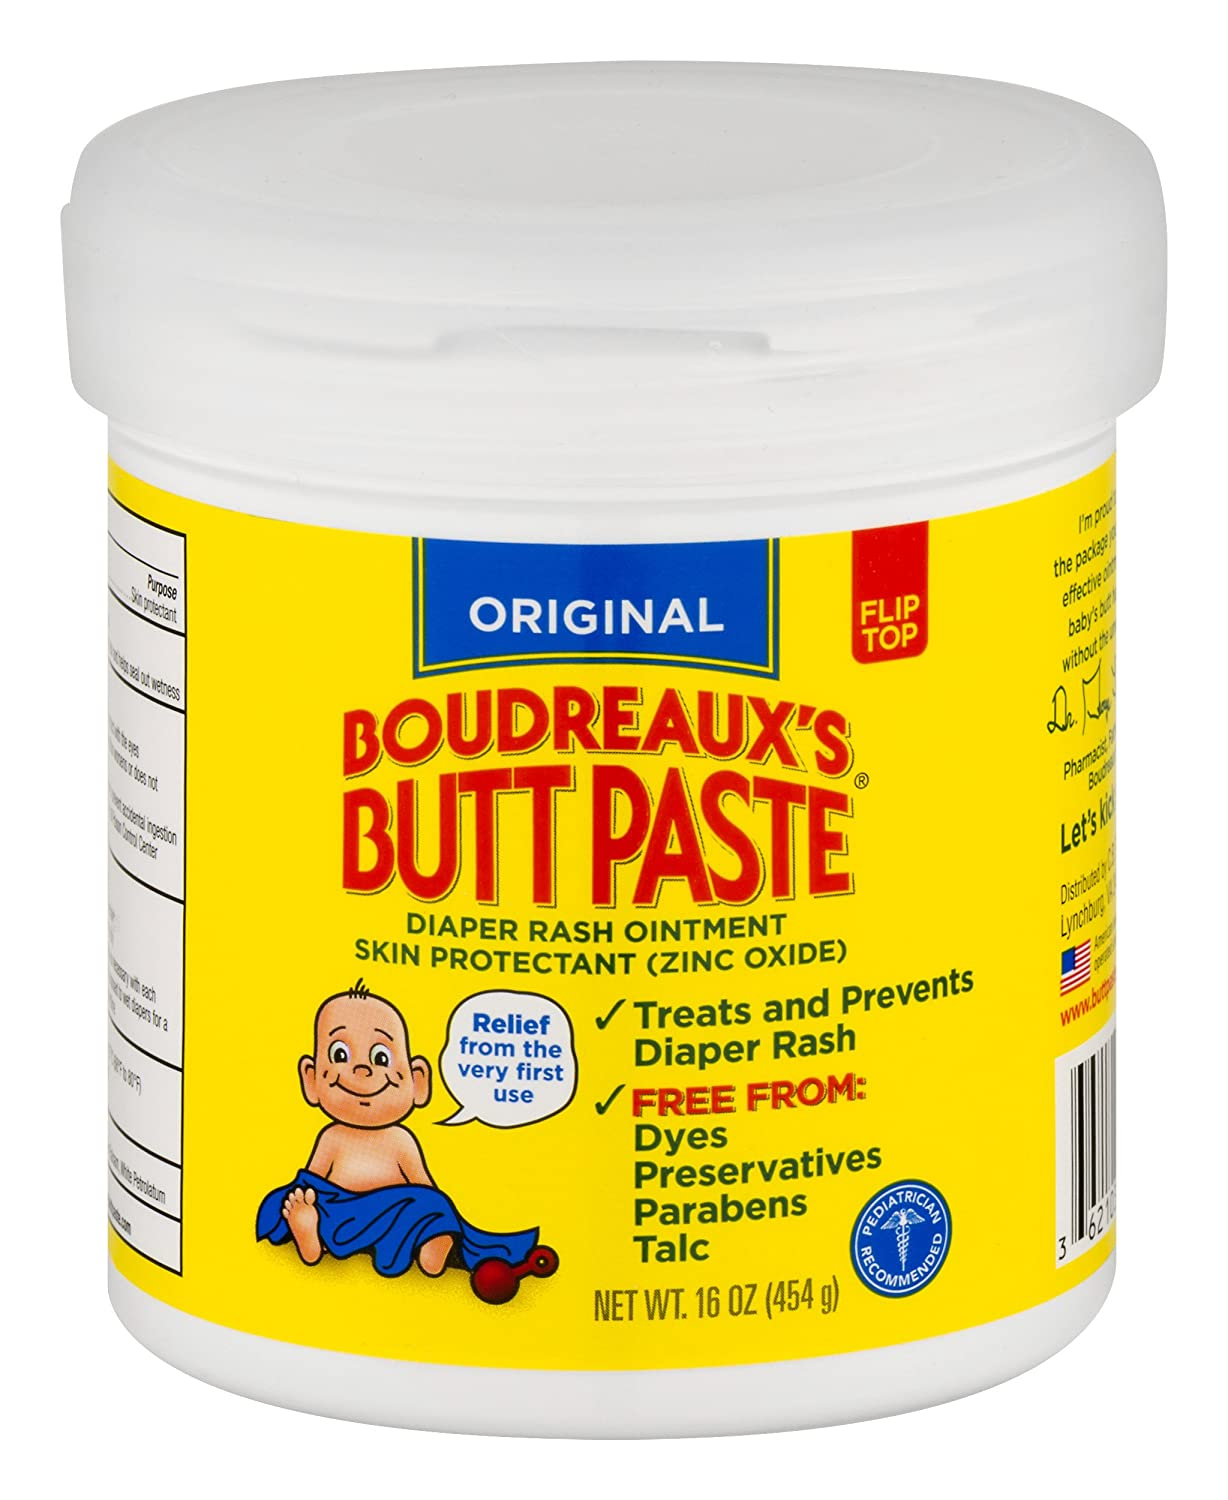 Boudreaux's Butt Paste Diaper Rash Ointment, Original, 16 Ounce CB Fleet B9350 ( FLEET ) ( REEB )